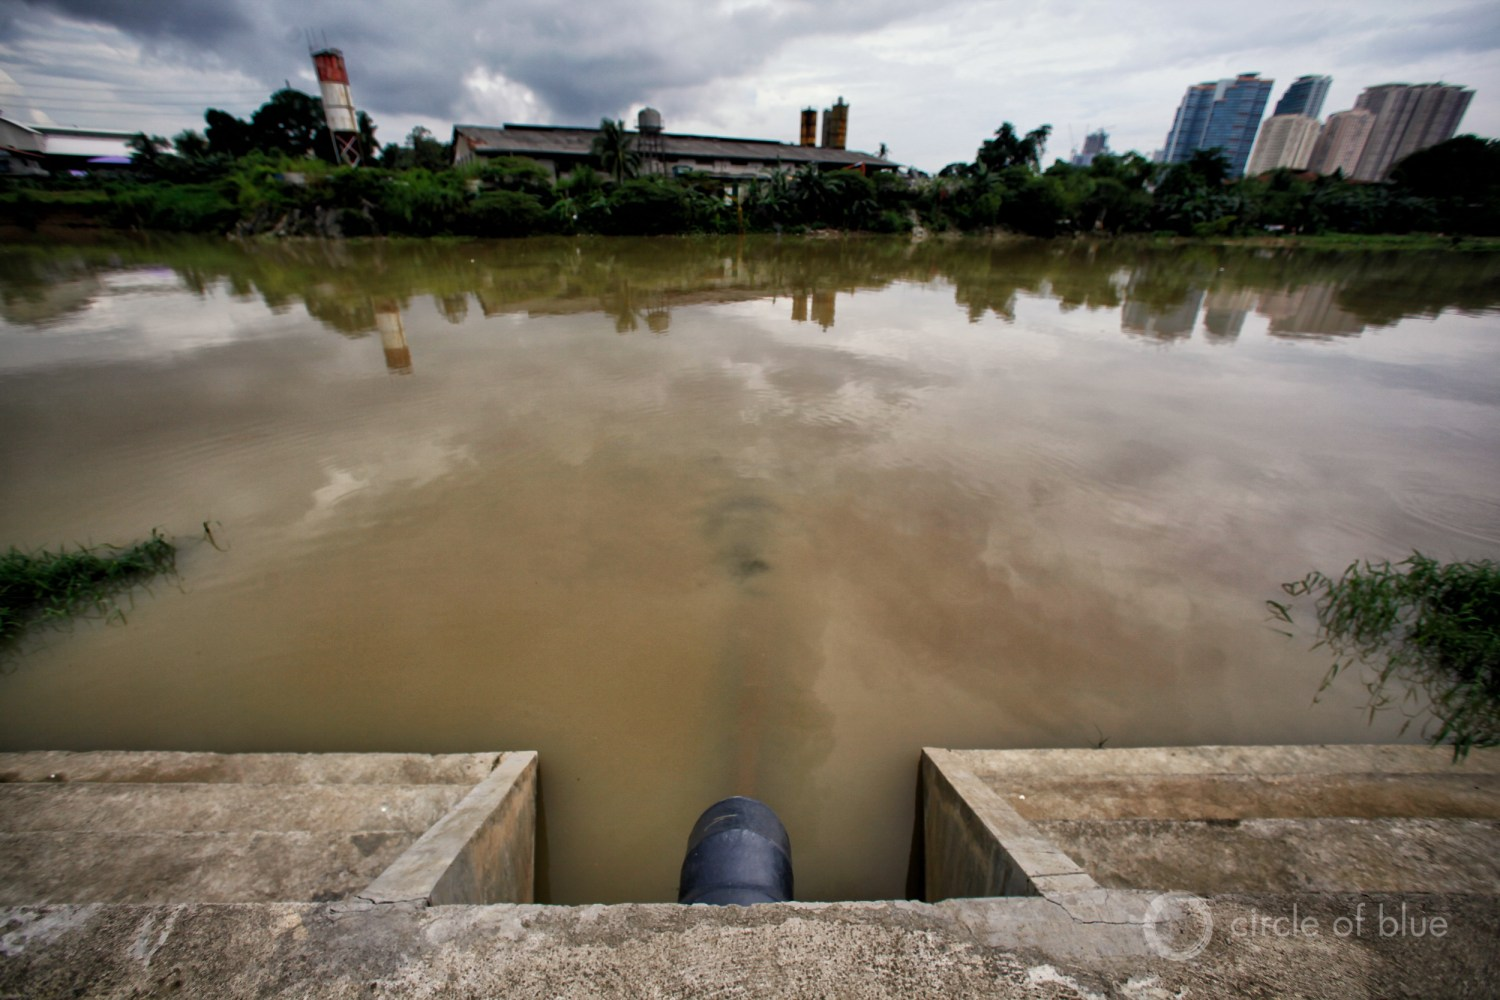 The Pasig River flows through Manila, capital of the Philippines. Before being named the country's environment secretary, Gina Lopez led a campaign to clean up the Pasig.